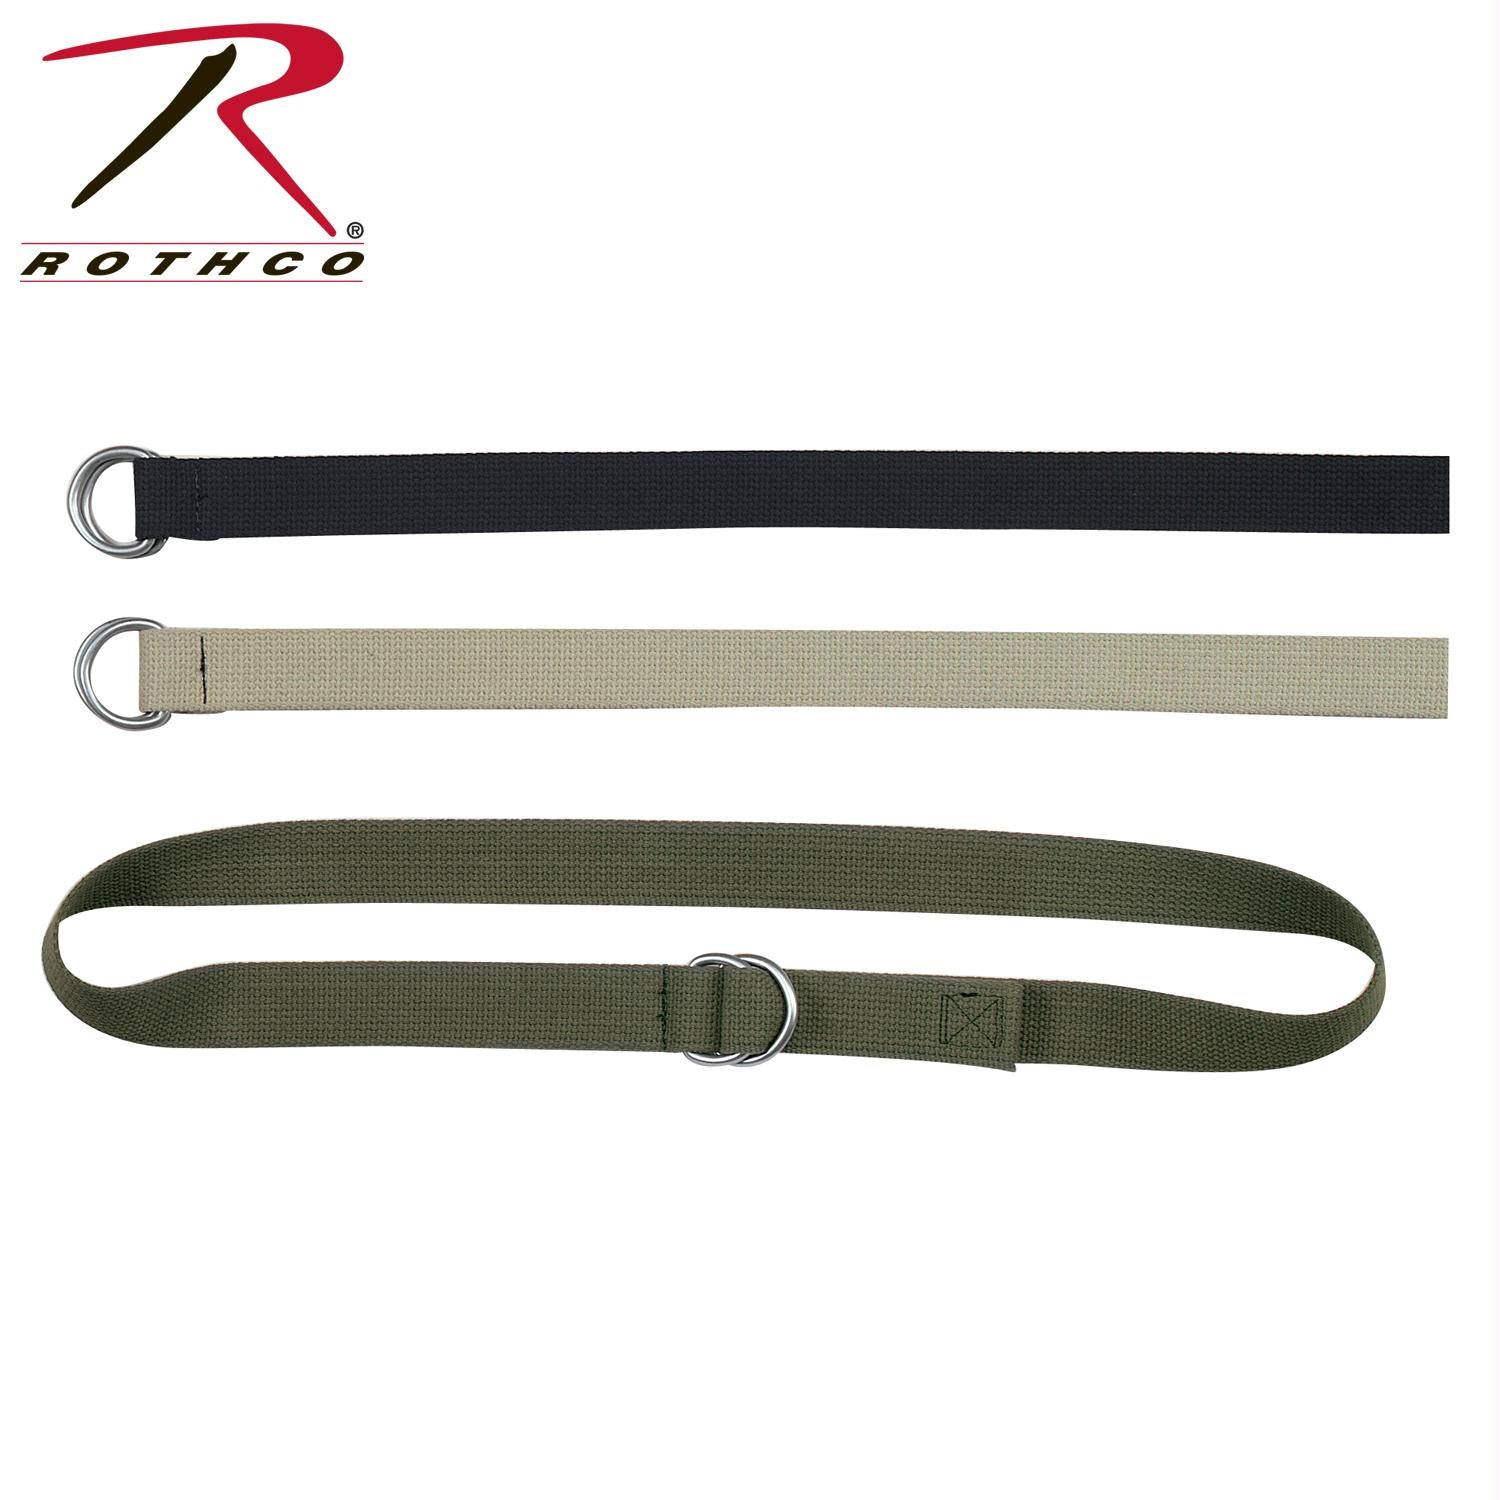 Rothco-Military D-Ring Expedition Belt - Khaki / L